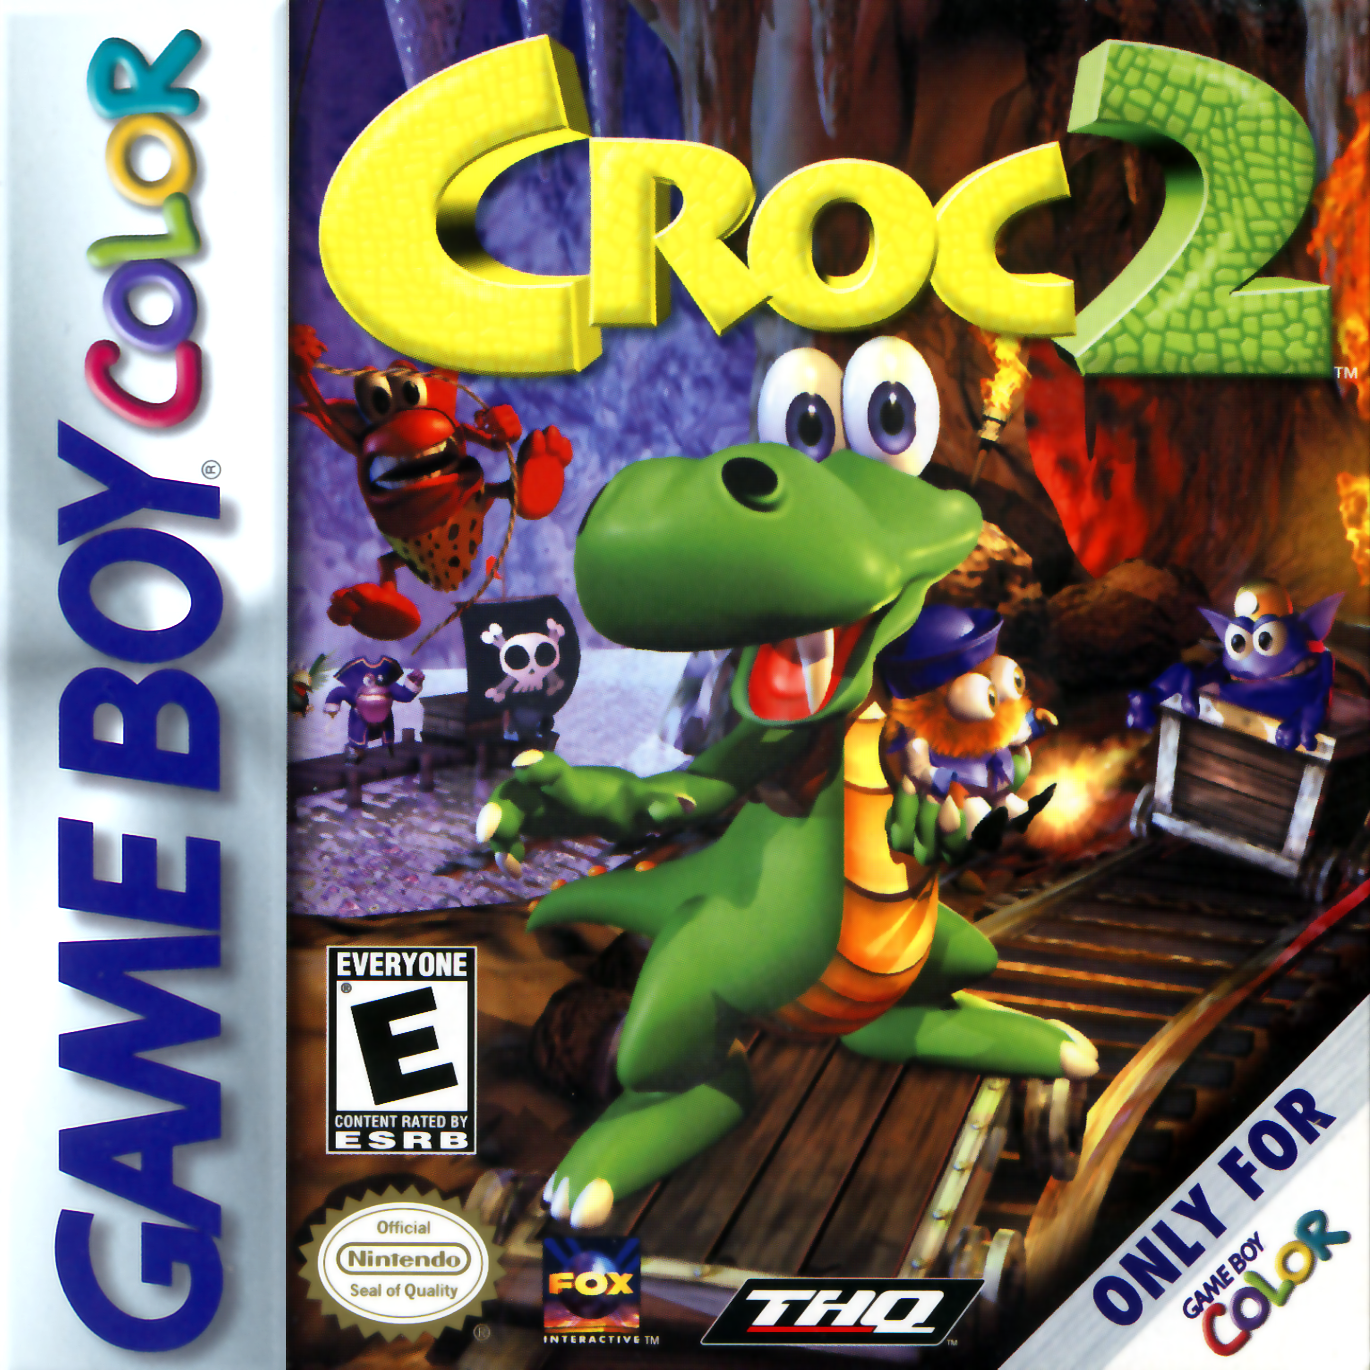 Croc 2 Nintendo Game Boy Color Gameboy, Color games